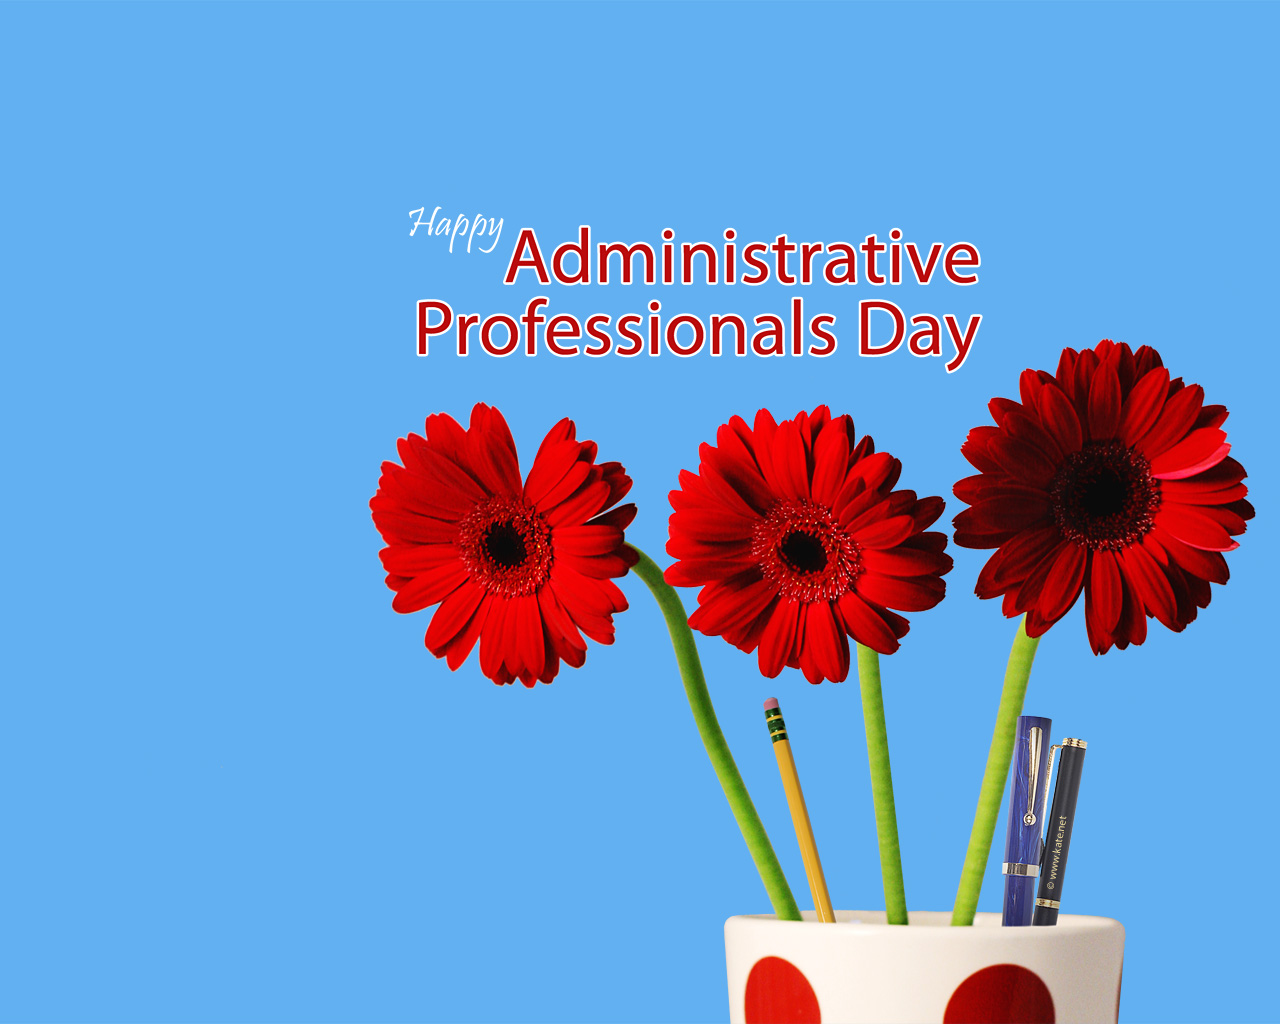 Professionals Day - Flowers